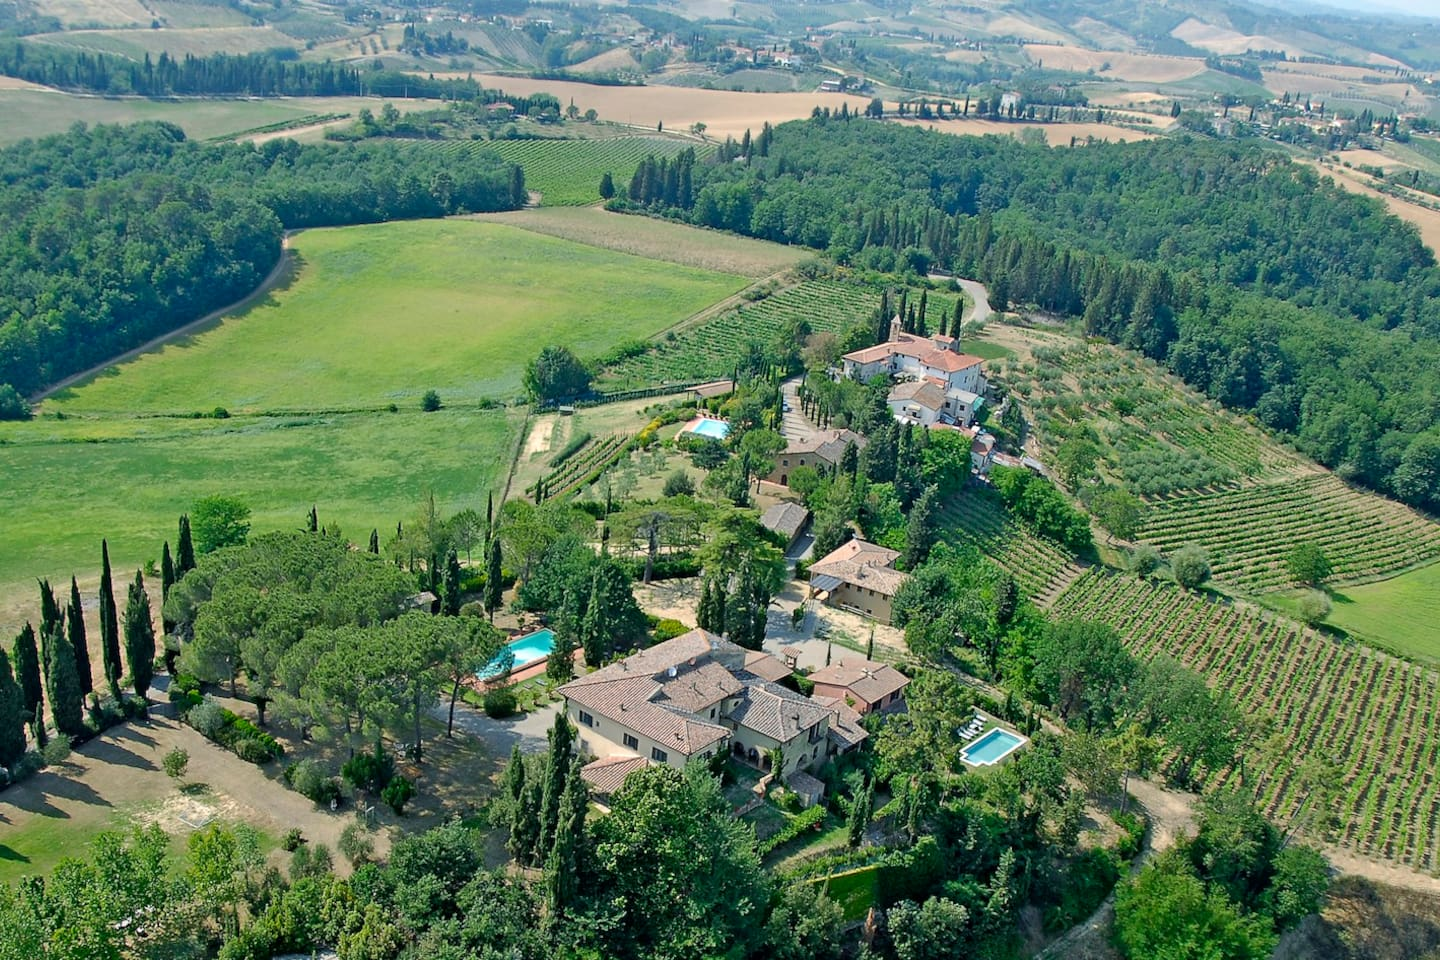 The aerial view of our villa complex in Tuscany